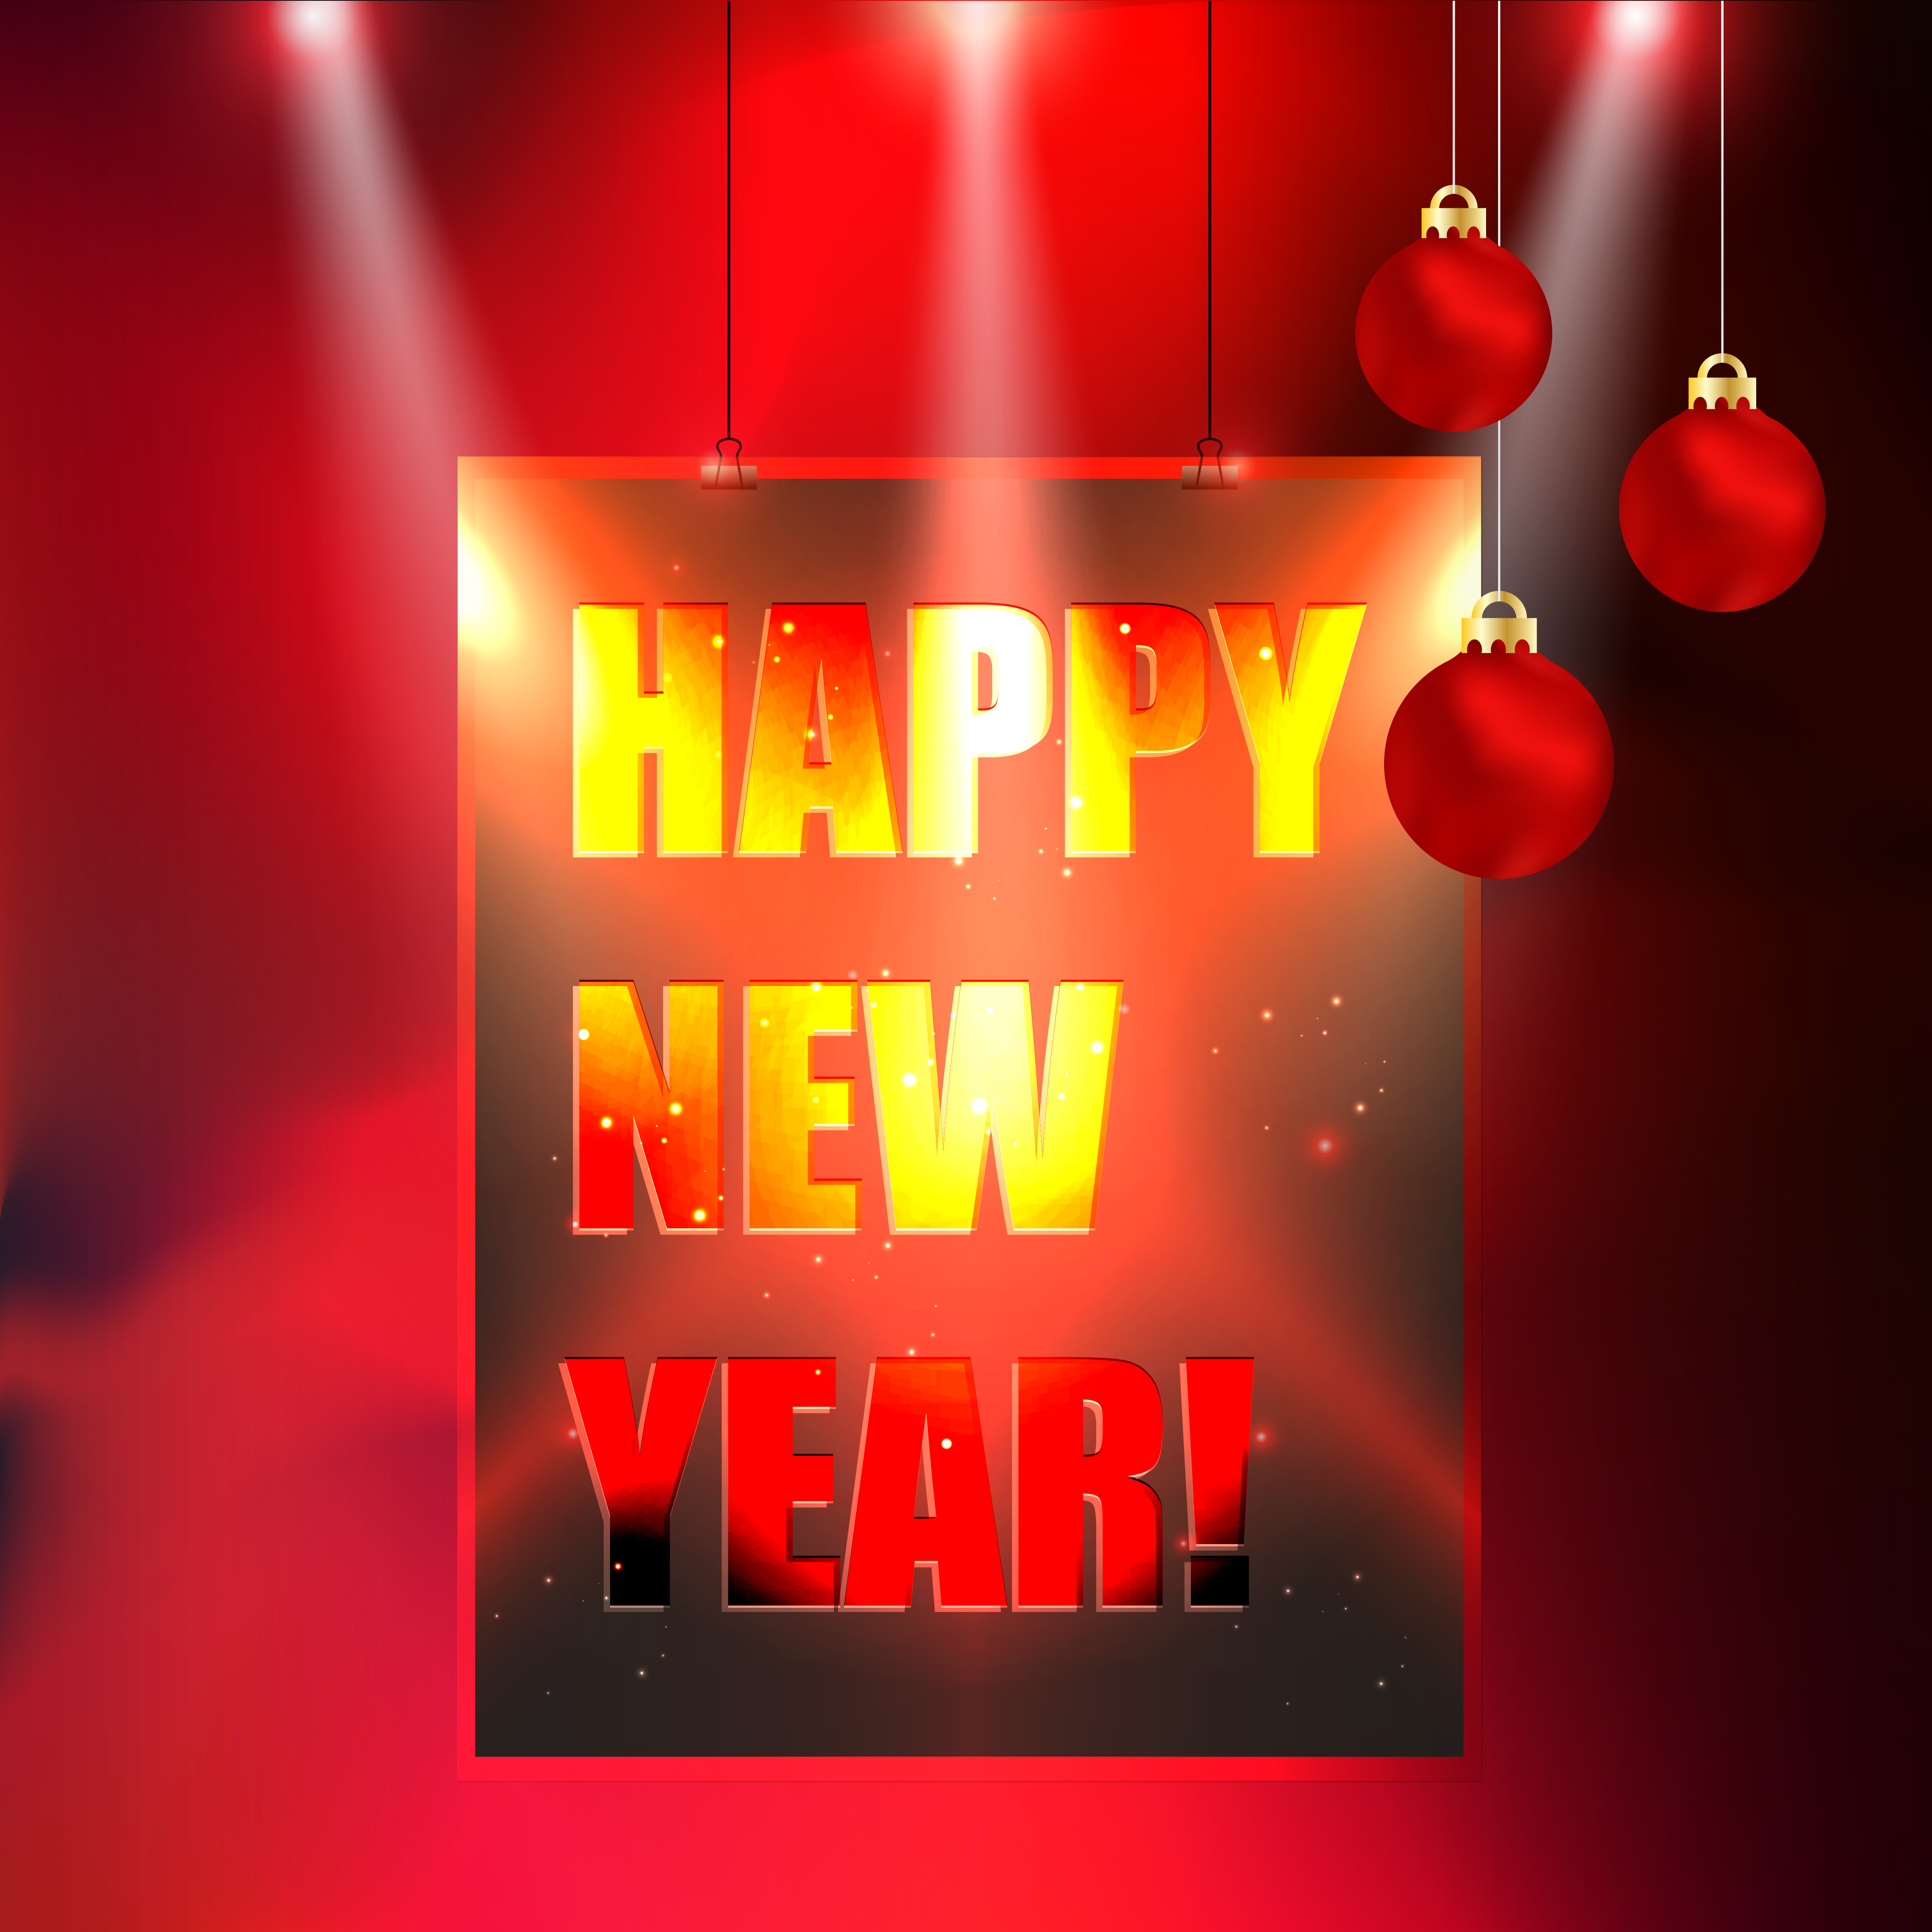 happy new year celebration poster background download free vector art stock graphics images